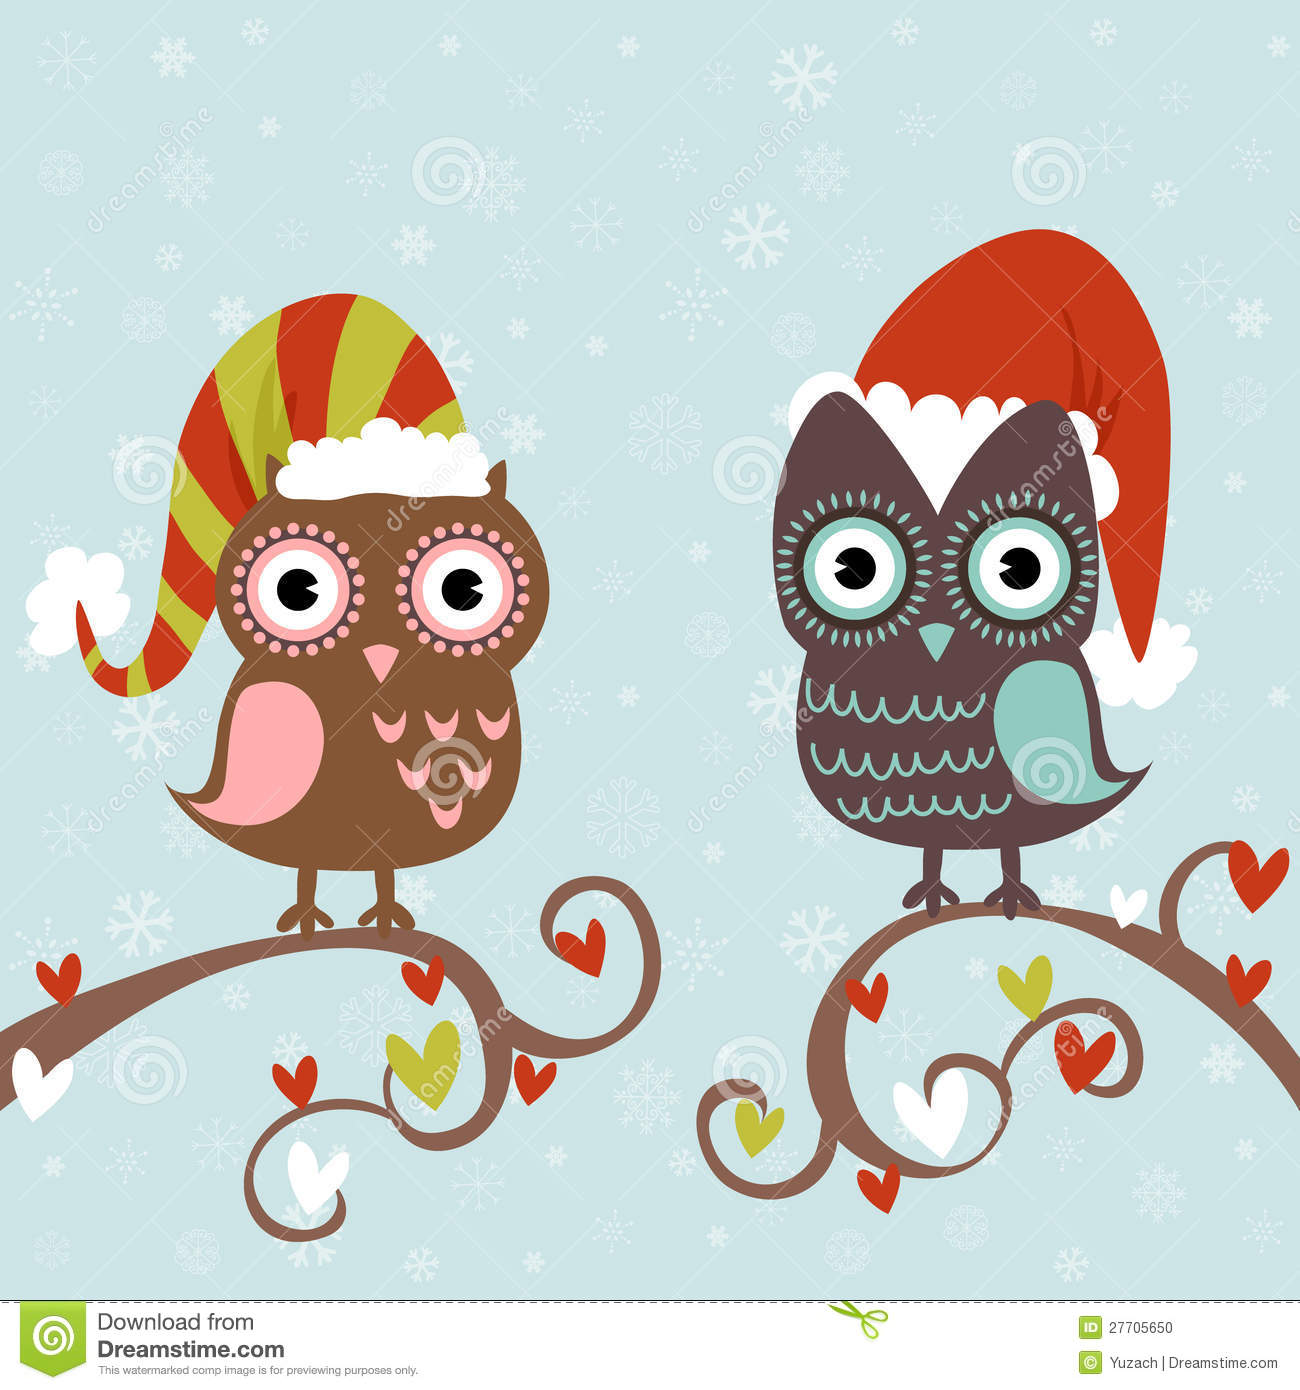 Christmas Card Of Owls In Hats Stock Vector - Illustration of ...